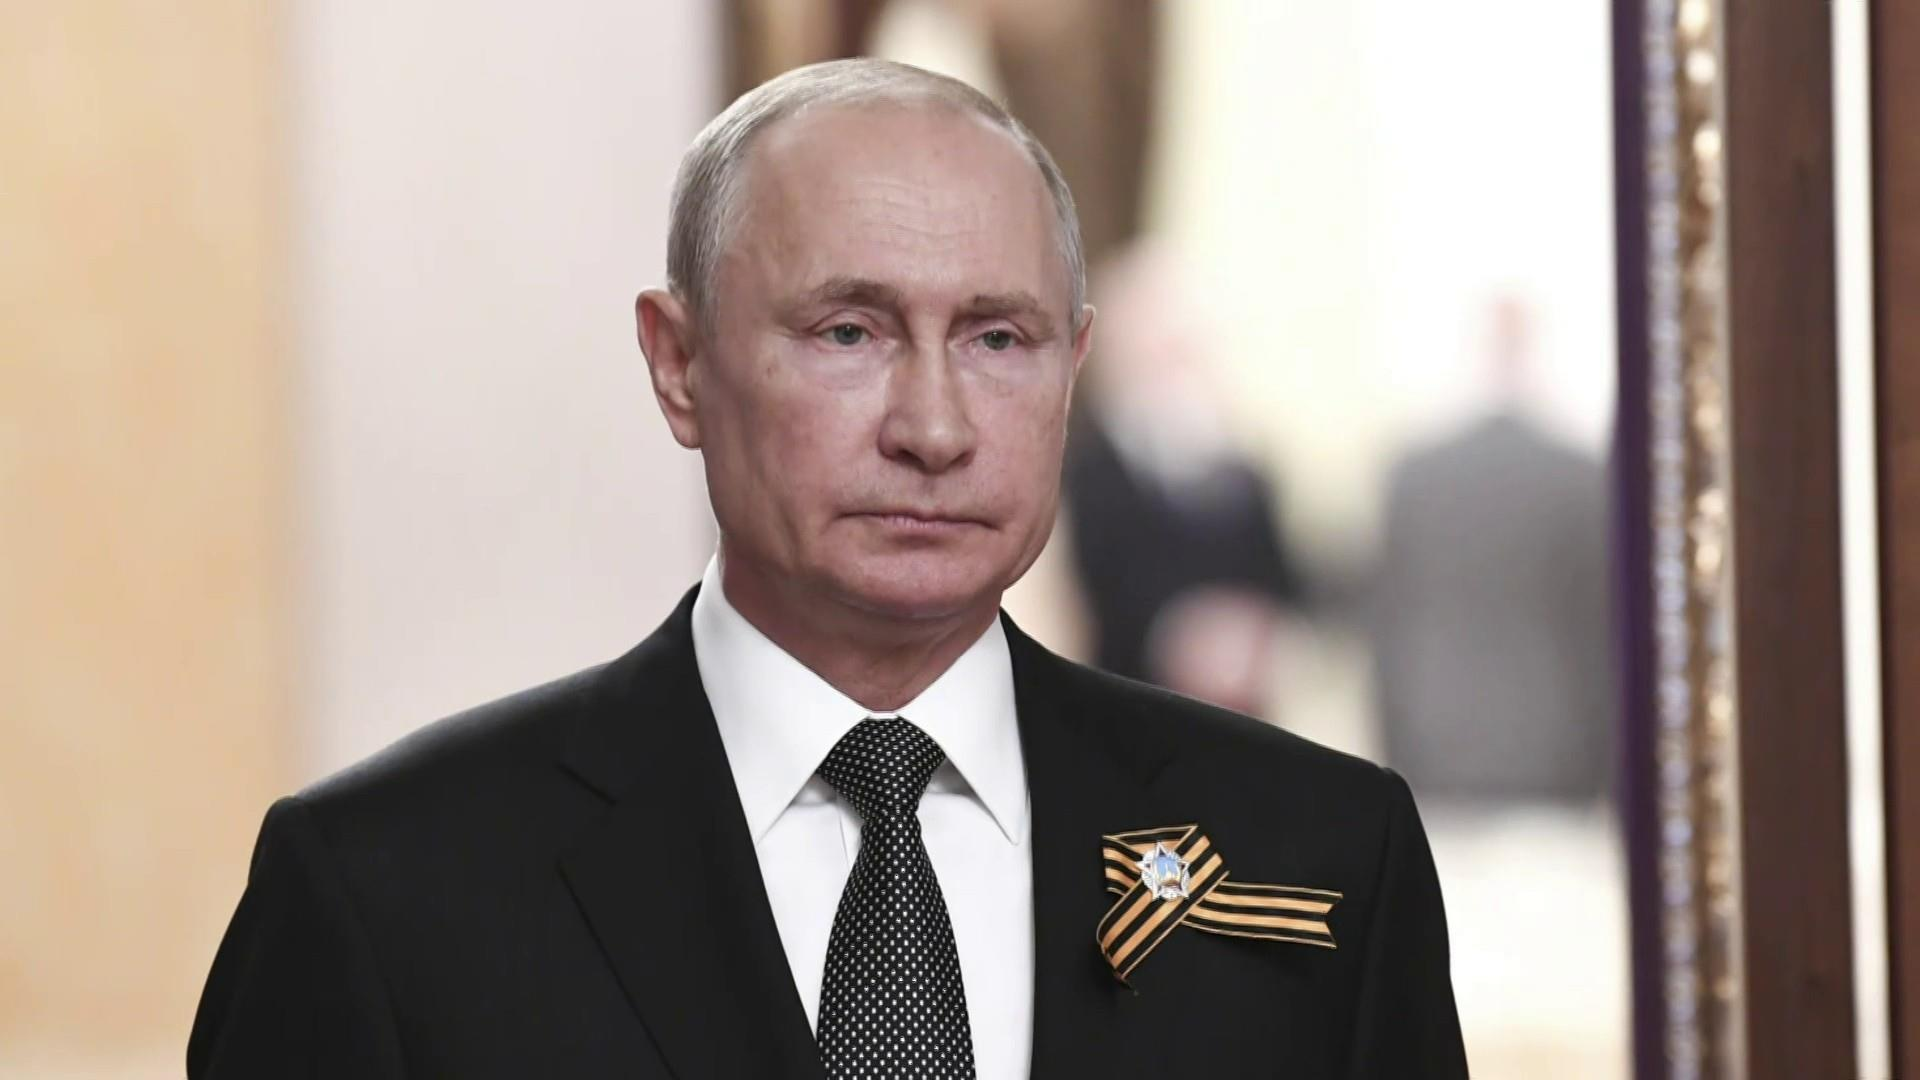 Vladimir Putin S Power Play Paves The Way For 16 More Years But Not Without Challenges